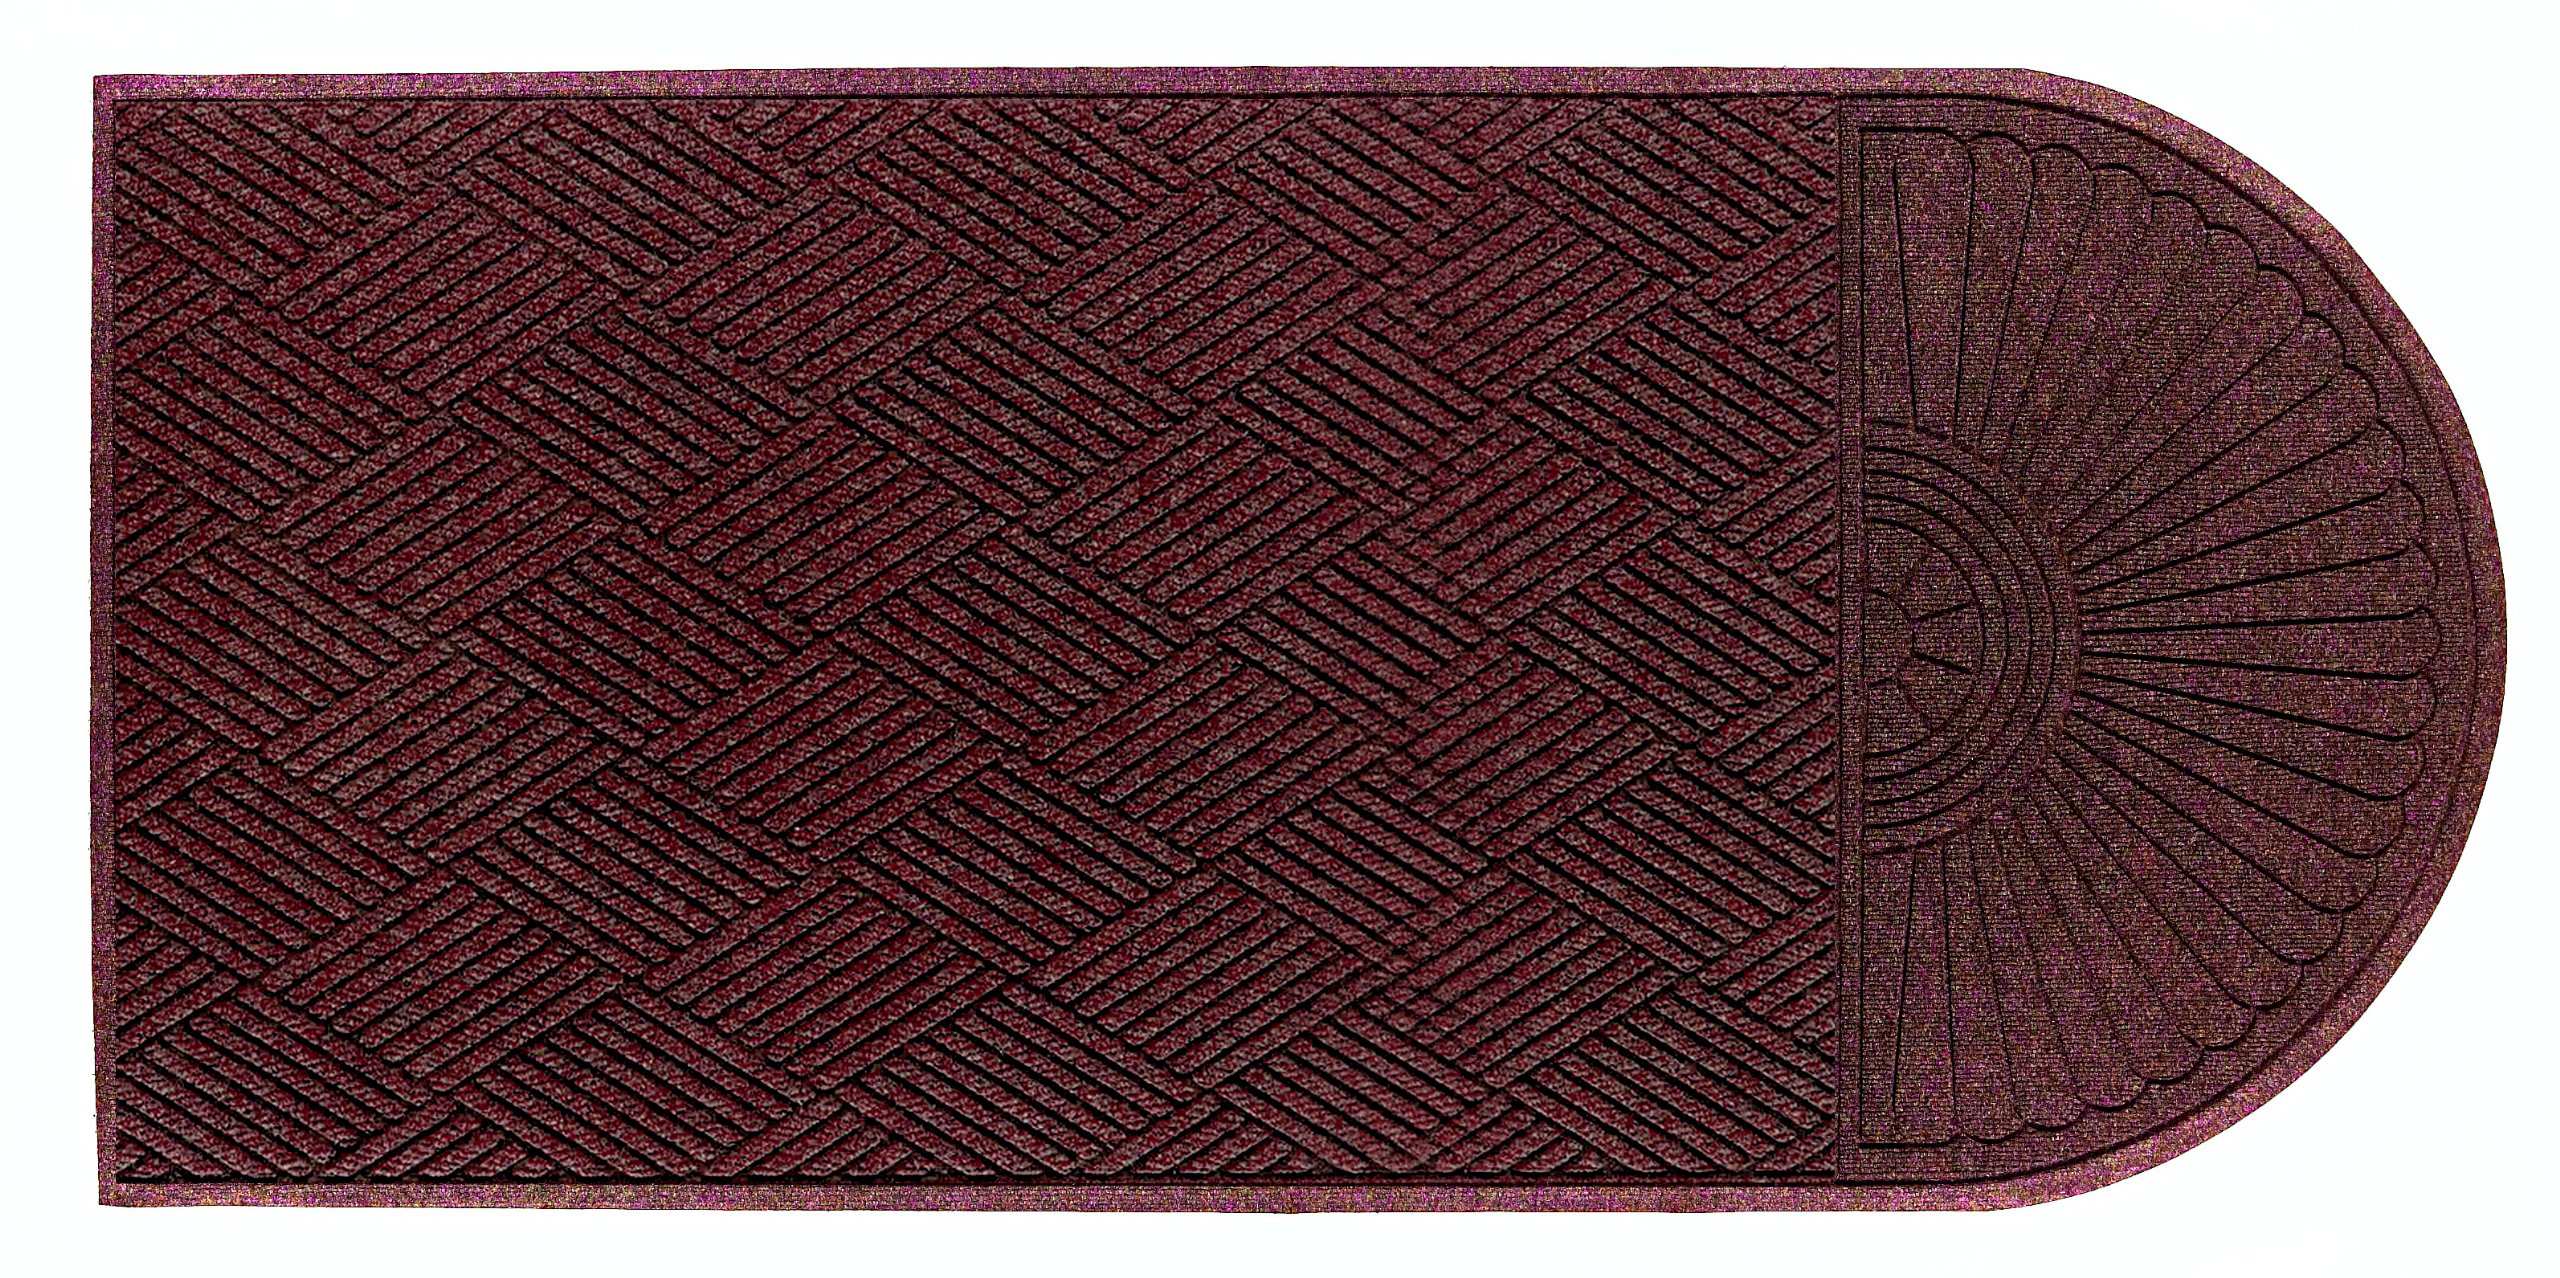 Andersen 22248 Waterhog Eco Grand Premier PET Polyester Fiber Single End Entrance Indoor/Outdoor Floor Mat, SBR Rubber Backing, 7' Length x 6' Width, 3/8'' Thick, Maroon